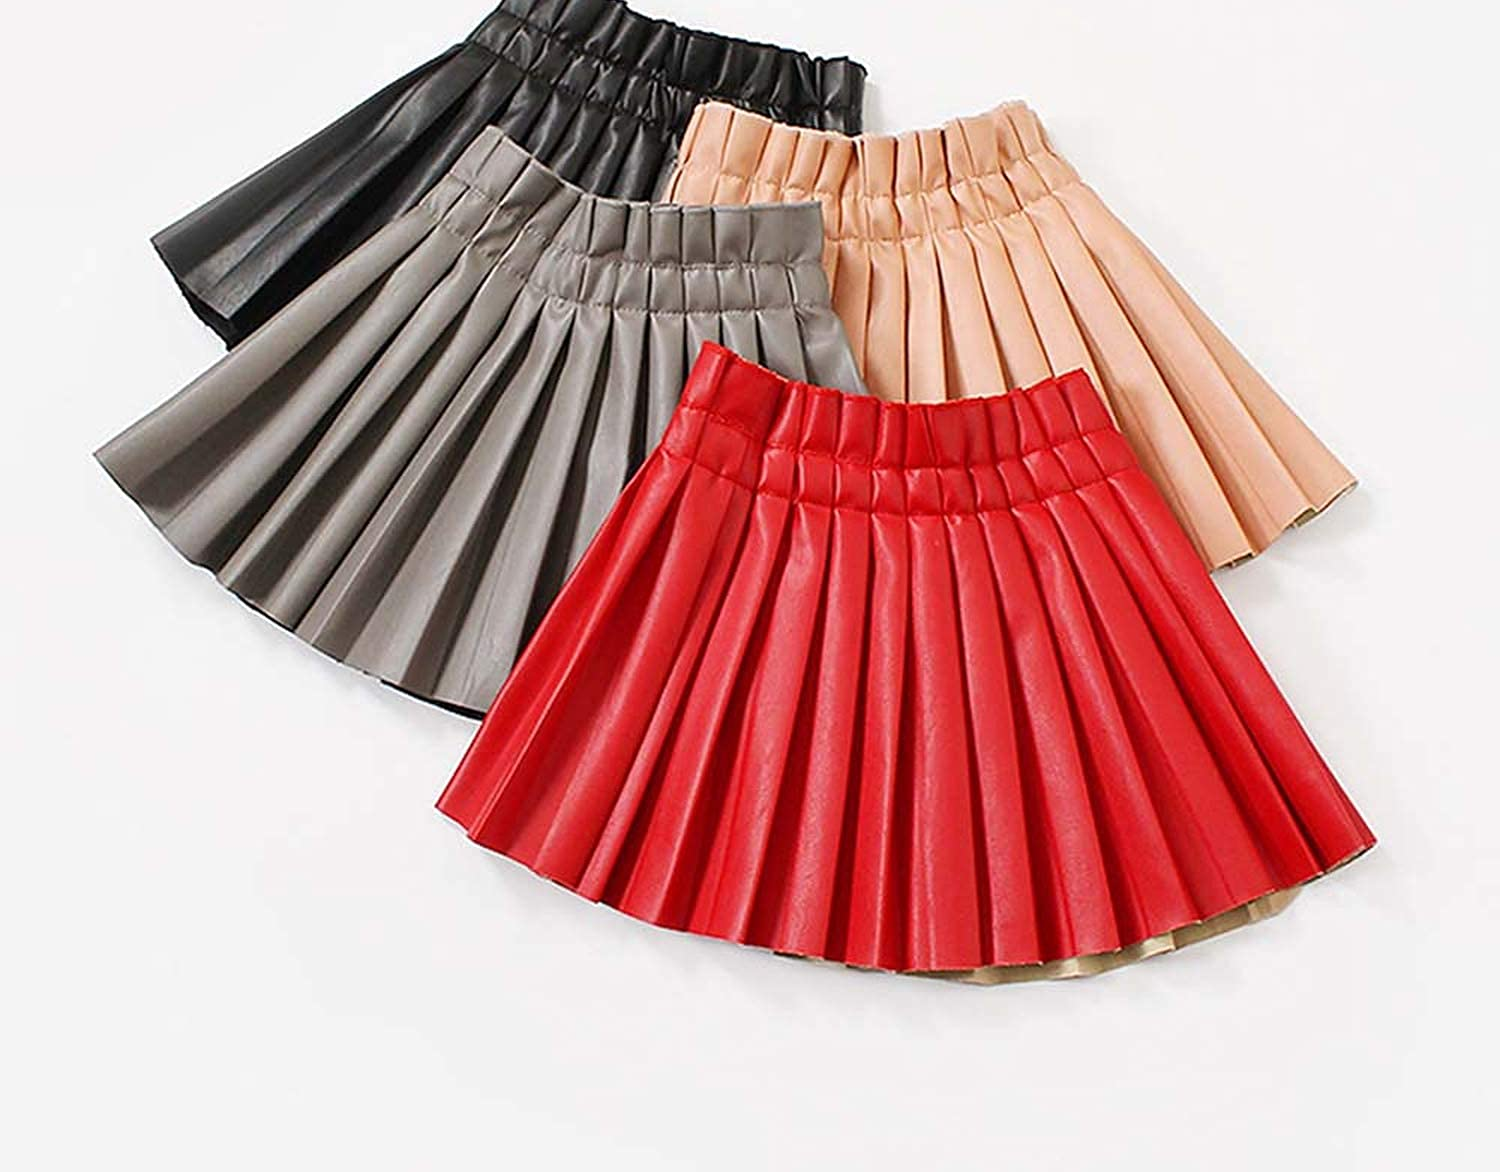 Girls Pu Leather Skirts with Mesh Patchwork Childrens Skirt Baby Outwear Fashion Style Kids Skirts